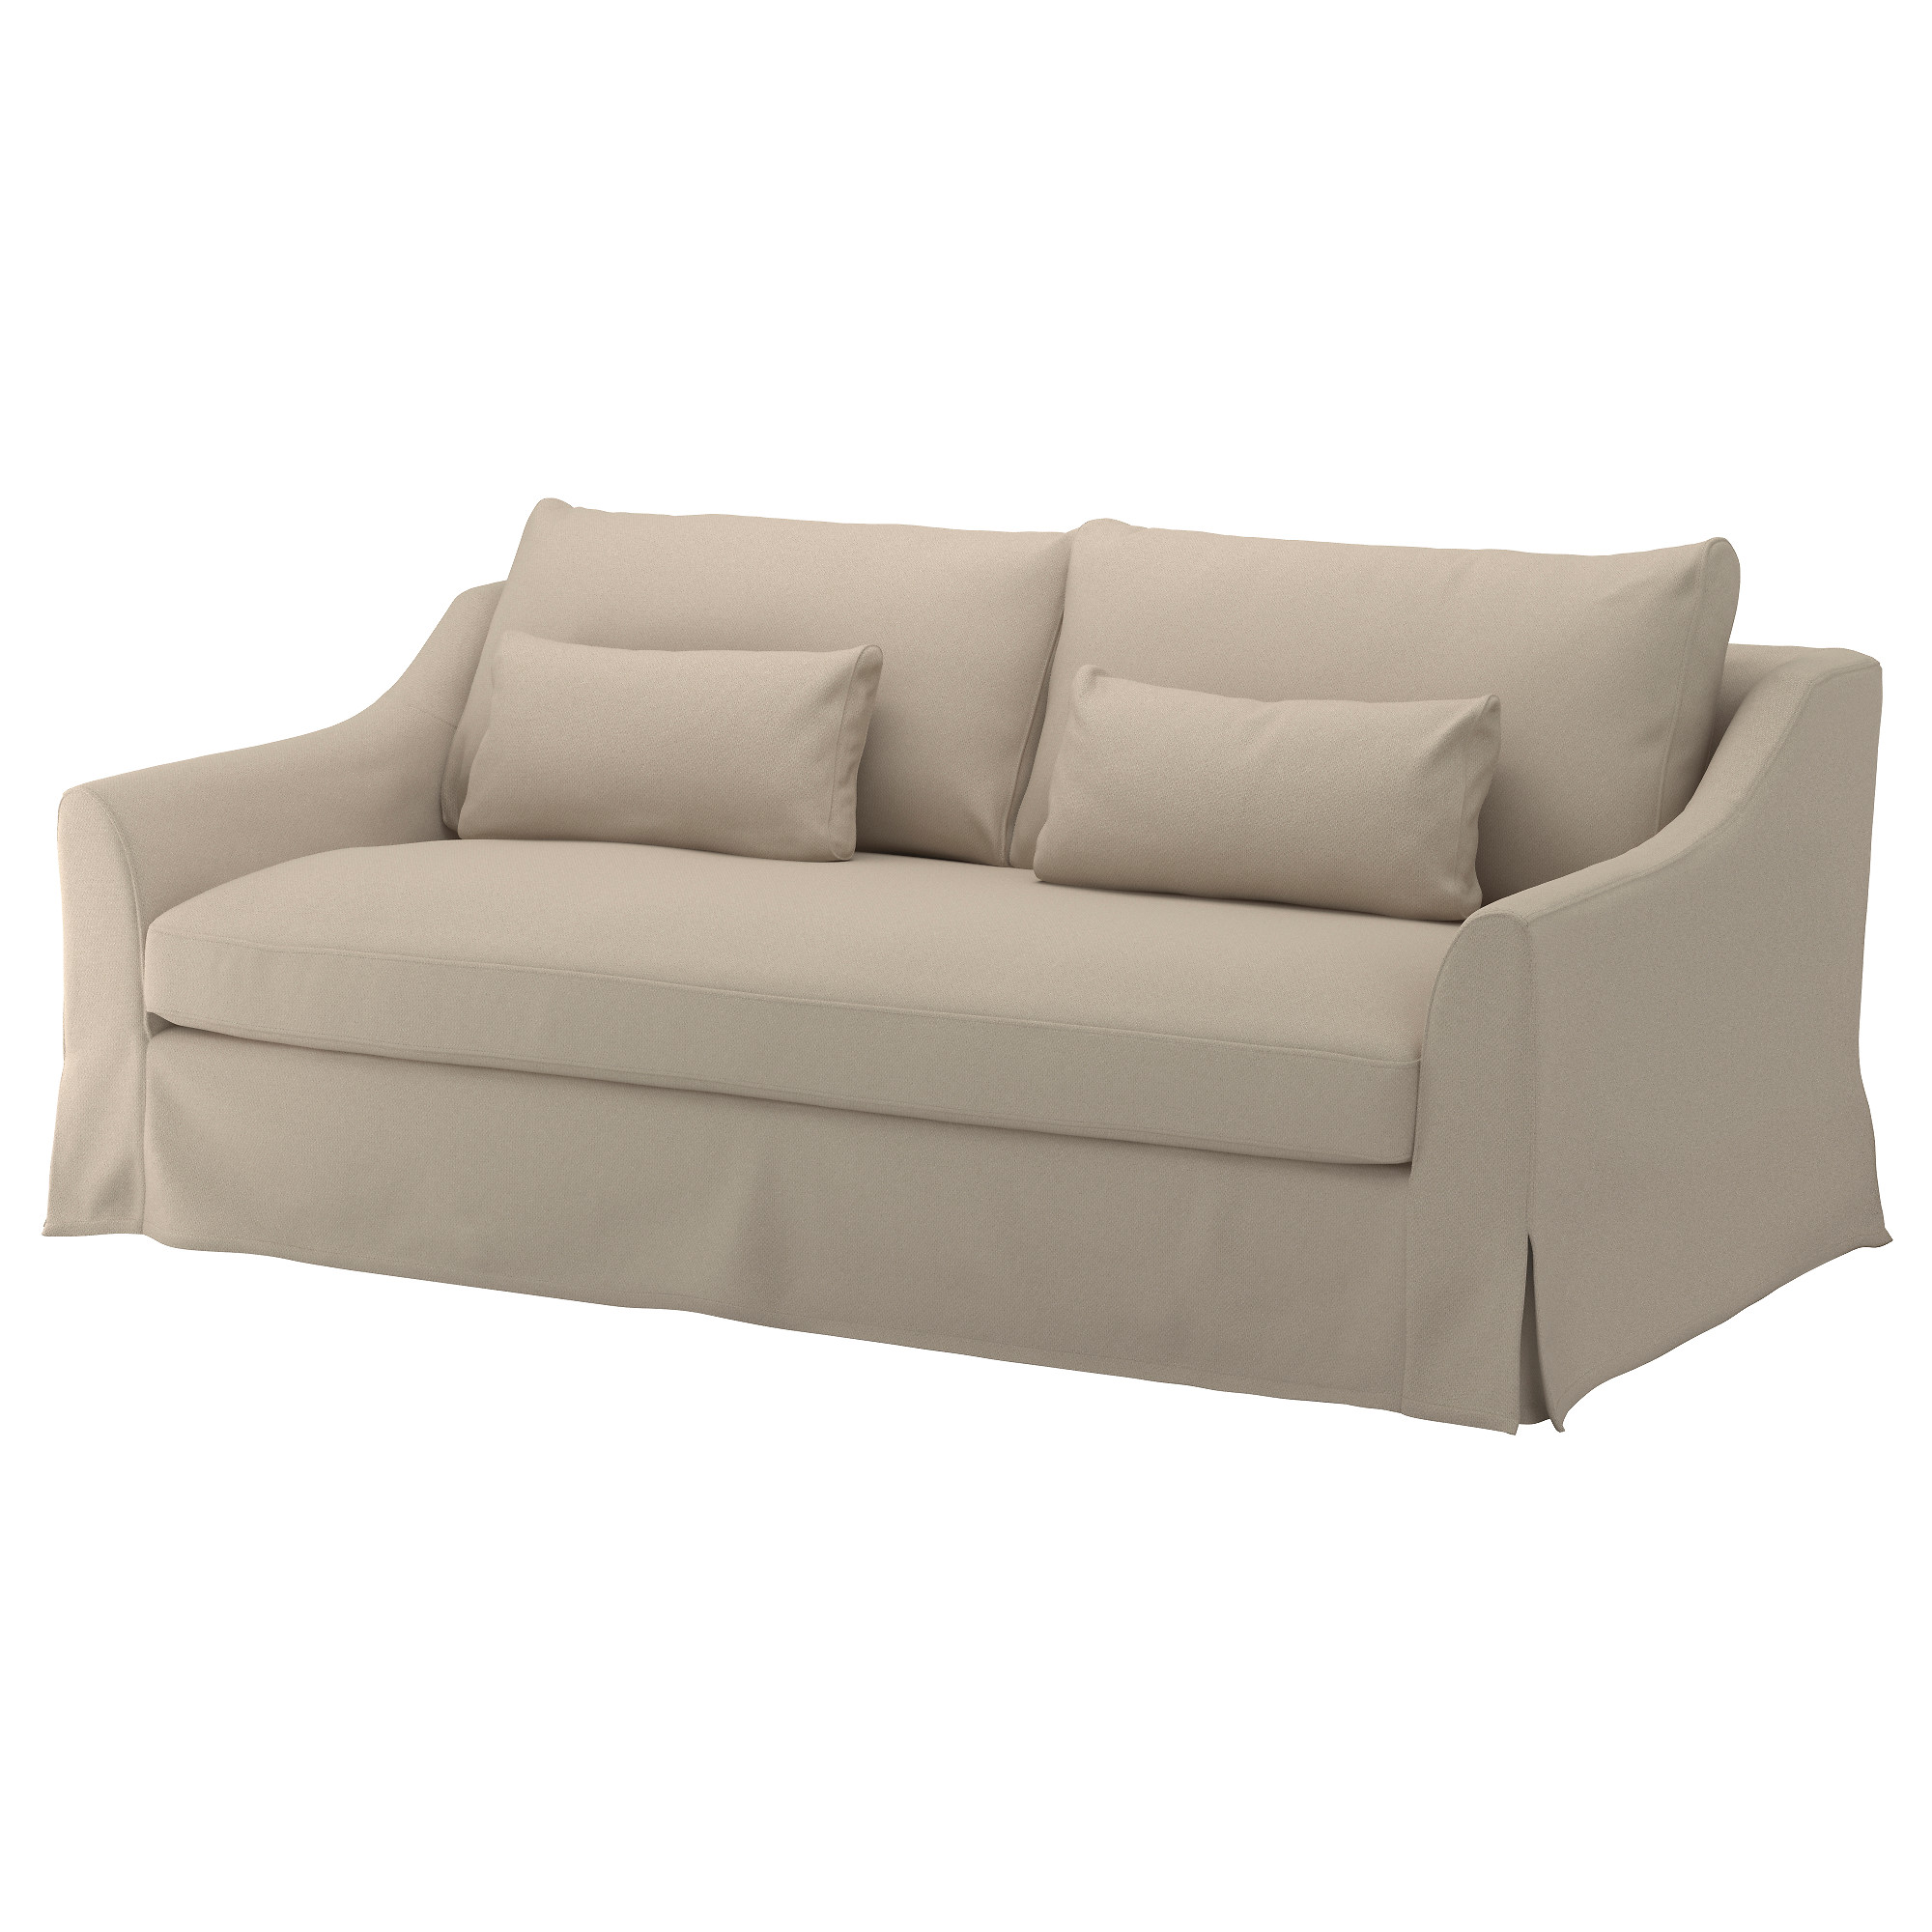 "F""RL–V Cover for sofa Flodafors beige IKEA"